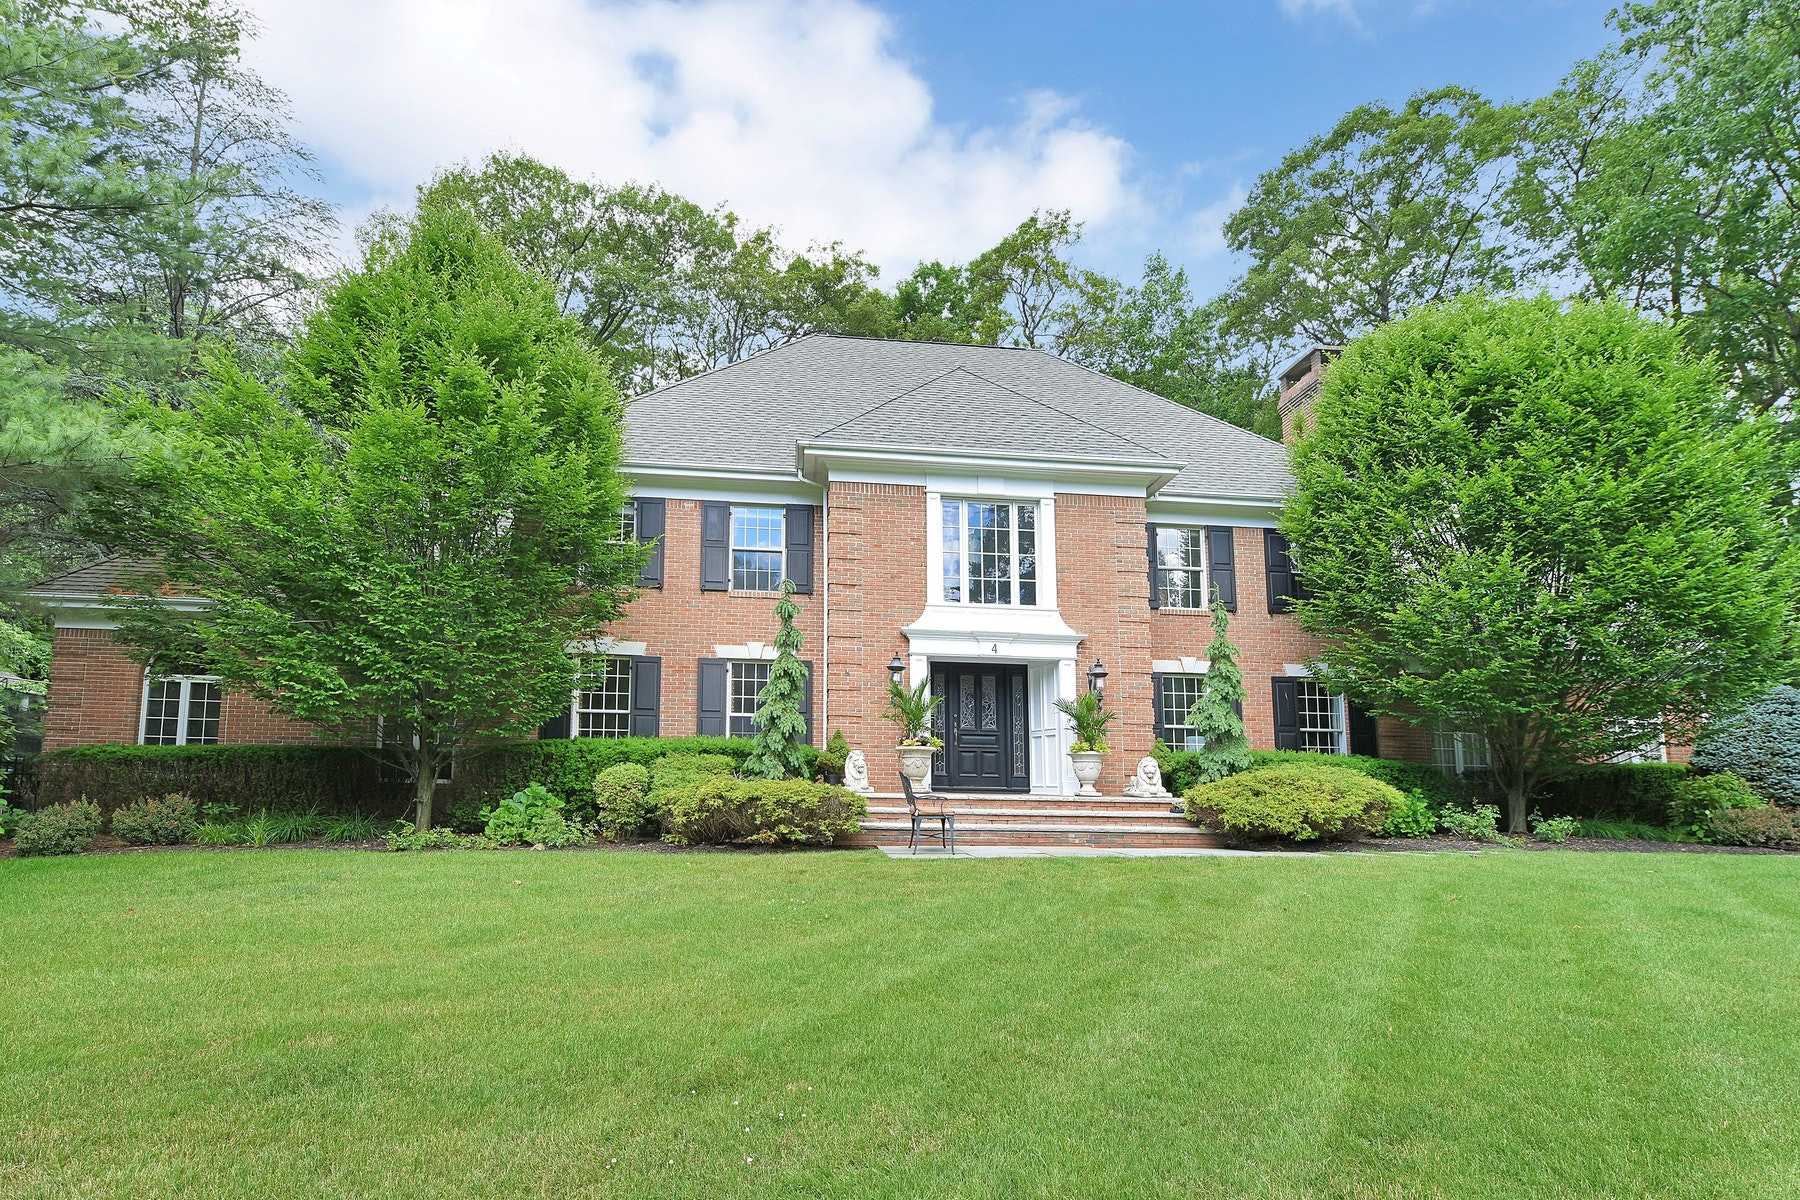 Single Family Homes for Sale at Colonial Manor 4 Deer Trail Franklin Lakes, New Jersey 07417 United States